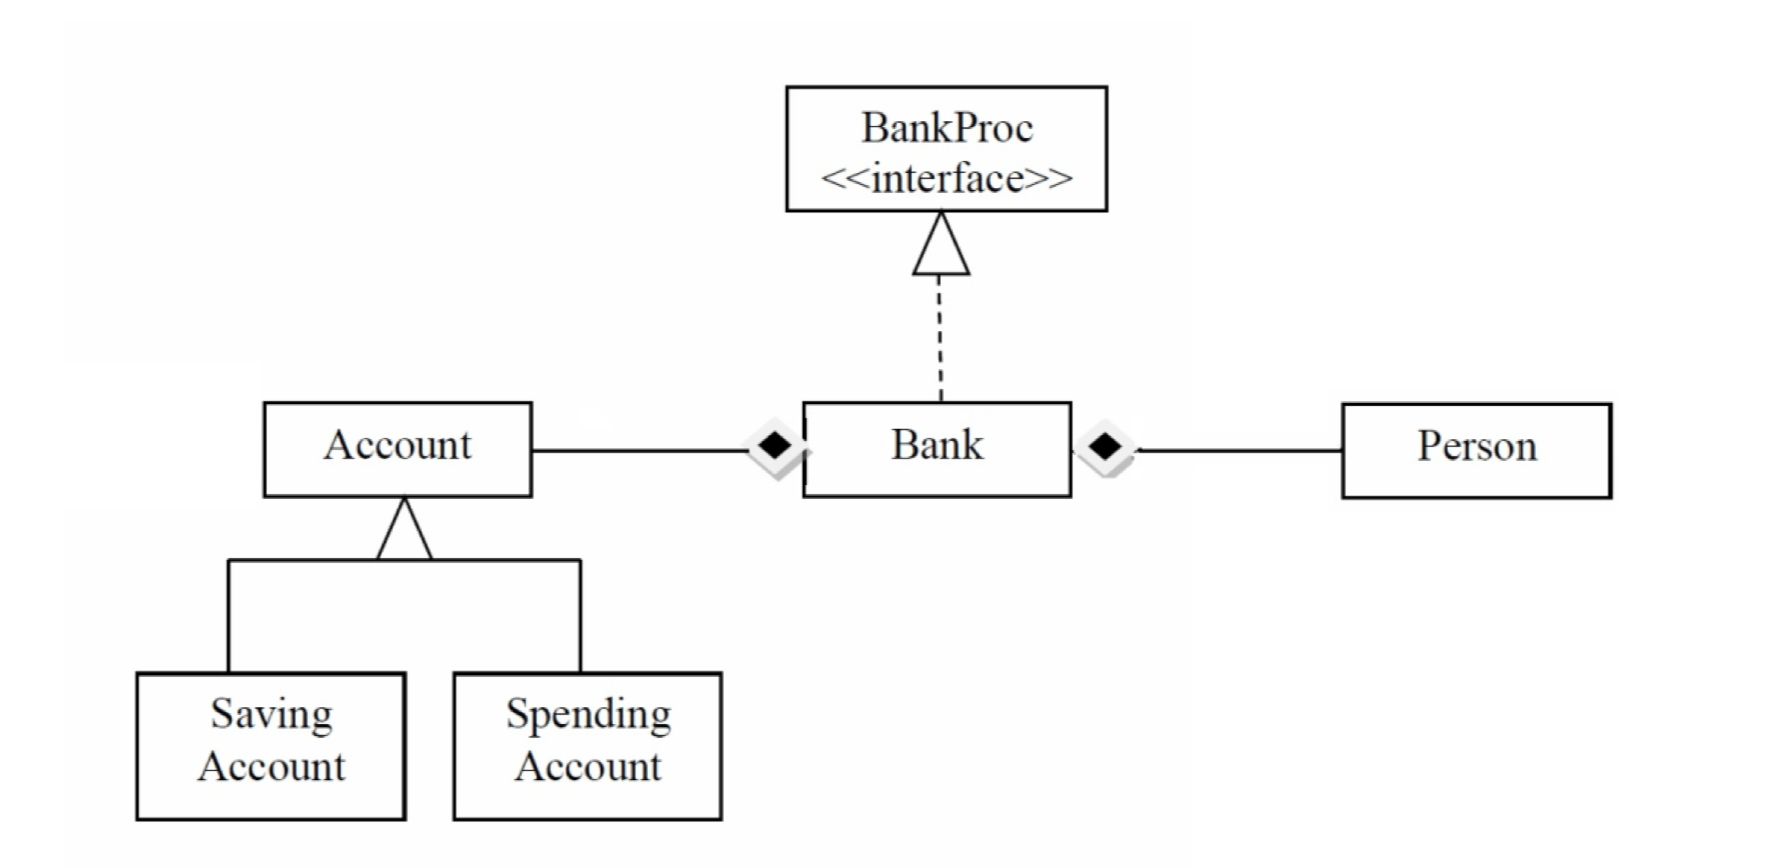 Java Bank Based On A Uml Class Diagram Trouble With The Hashmap Storage Stack Overflow